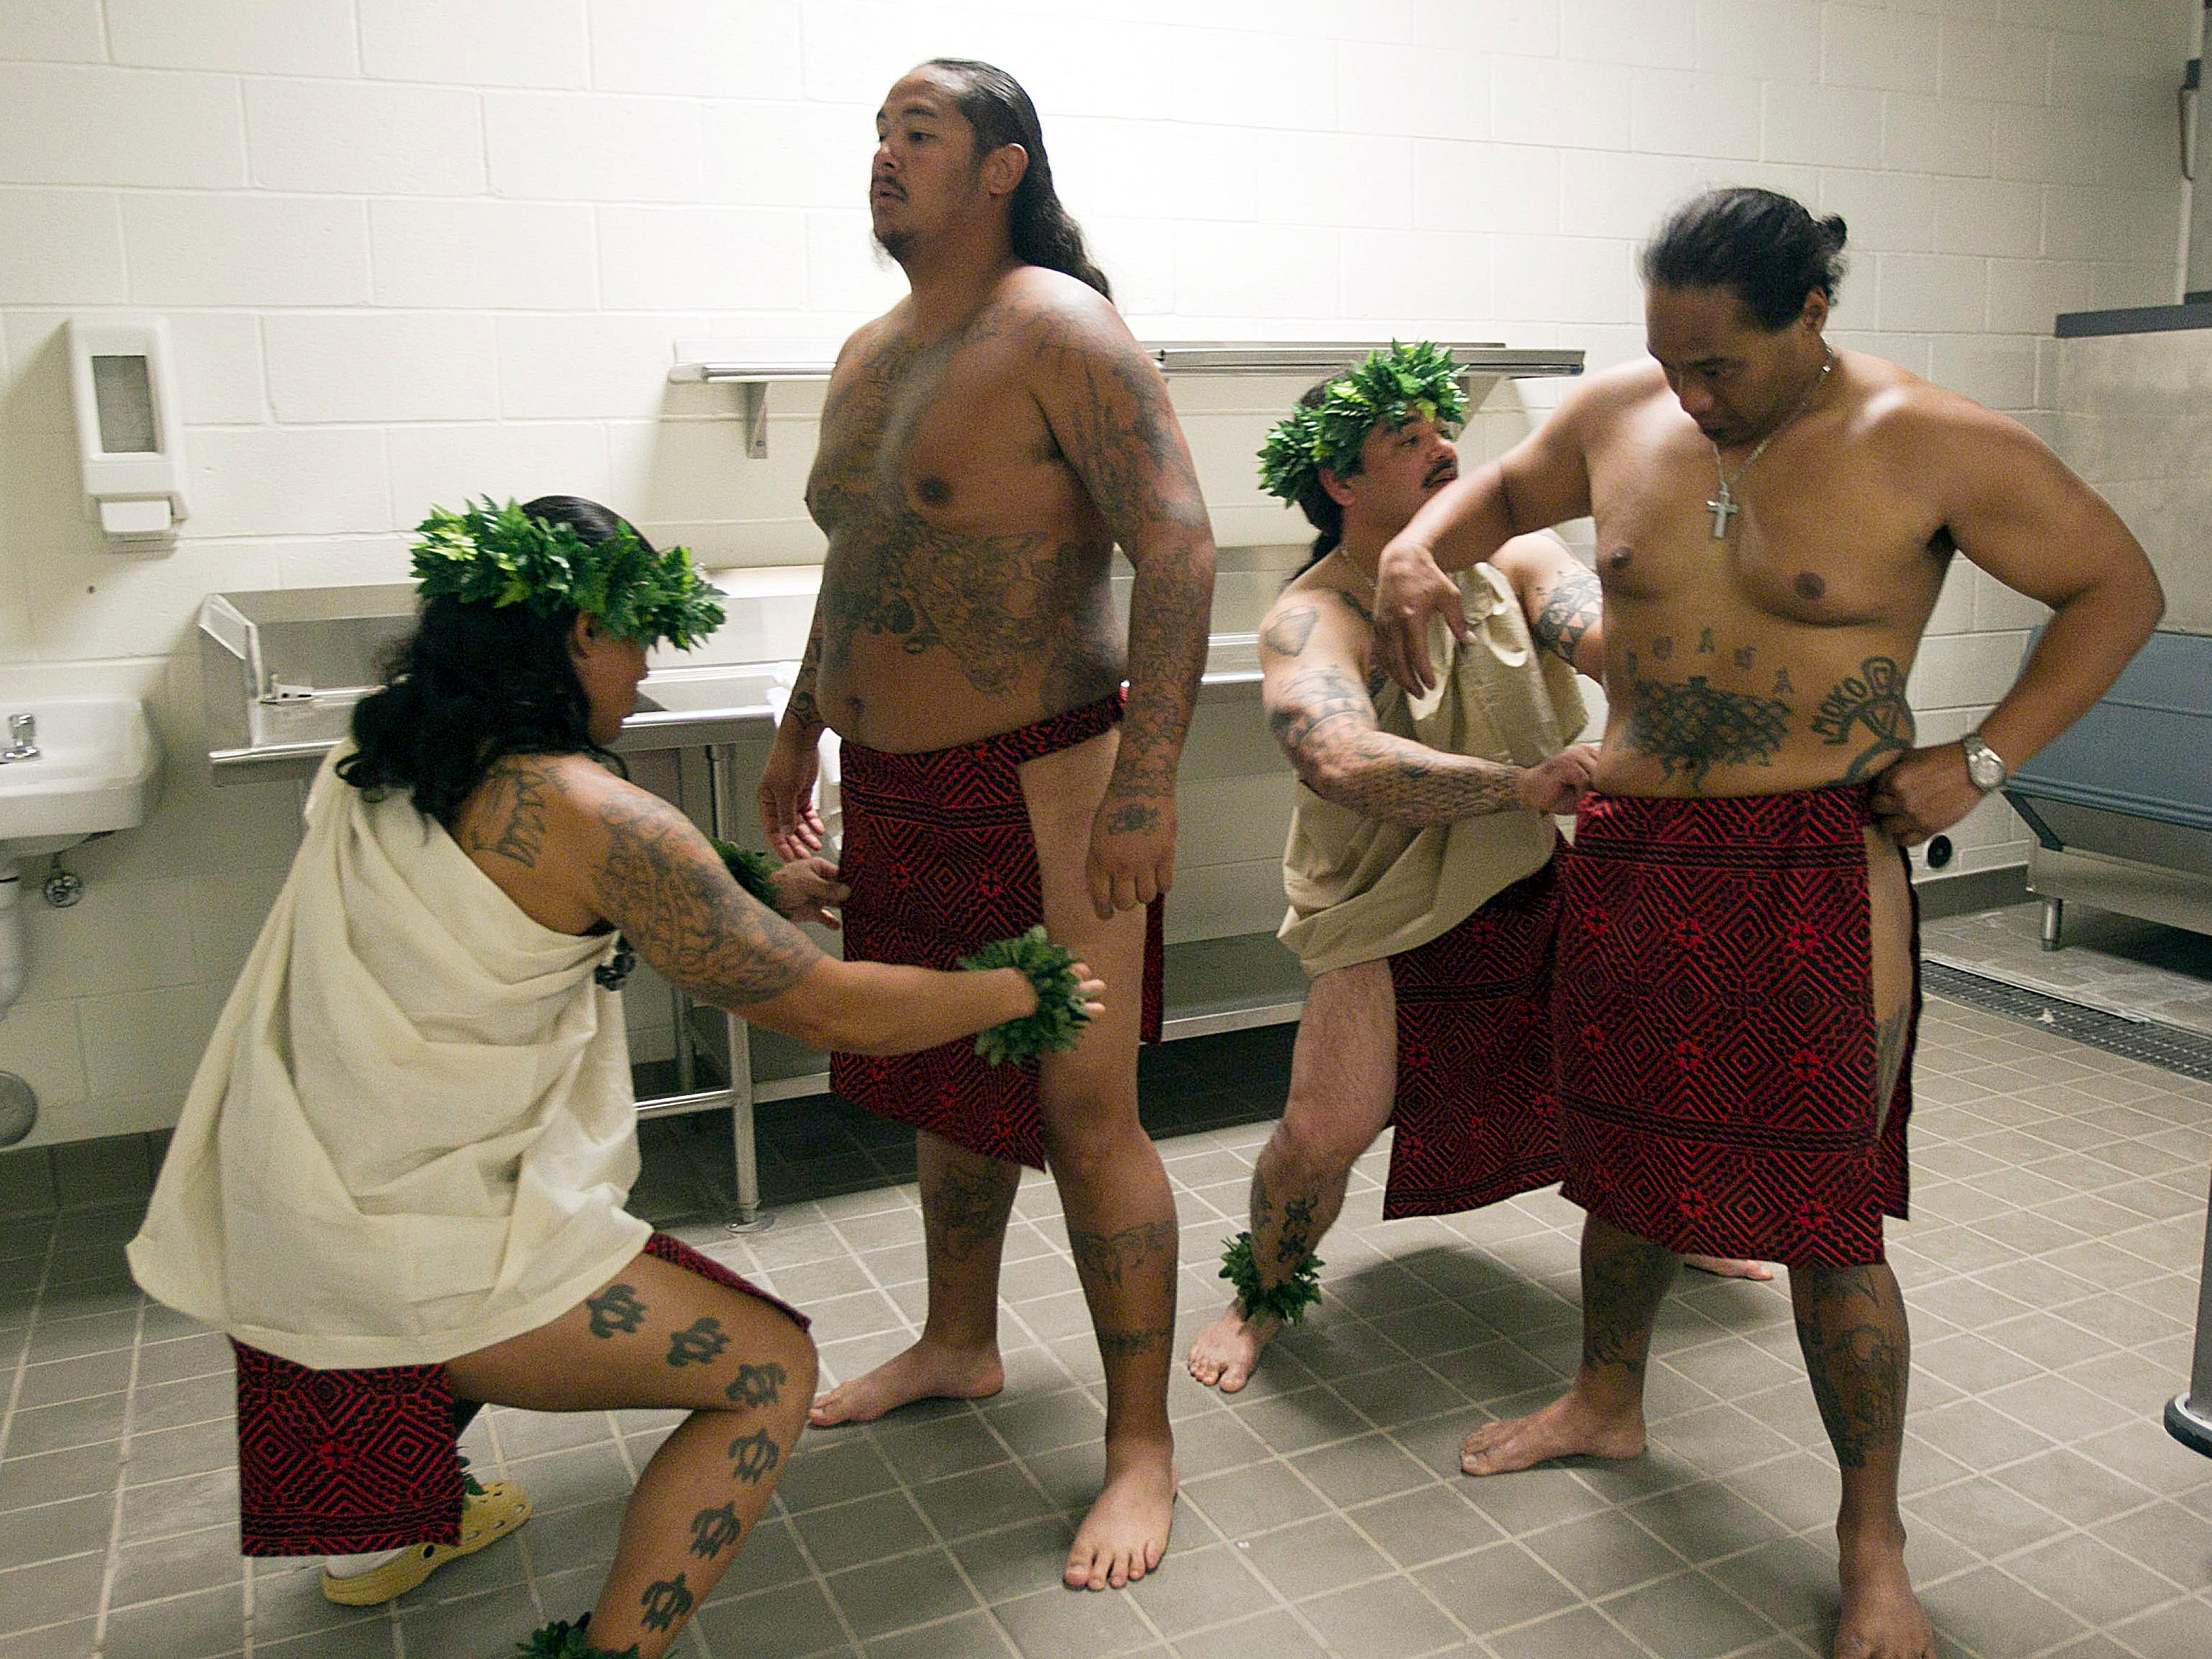 Inmates prepare to participate in a sunrise service wearing their traditional Hawaiian dress during the ceremonies on Oct. 9, 2011, to honor Lono, the Hawaiian god of rain and fertility, at Saguaro Correctional Center in Eloy. The private prison houses inmates from Hawaii serving lengthy sentences.